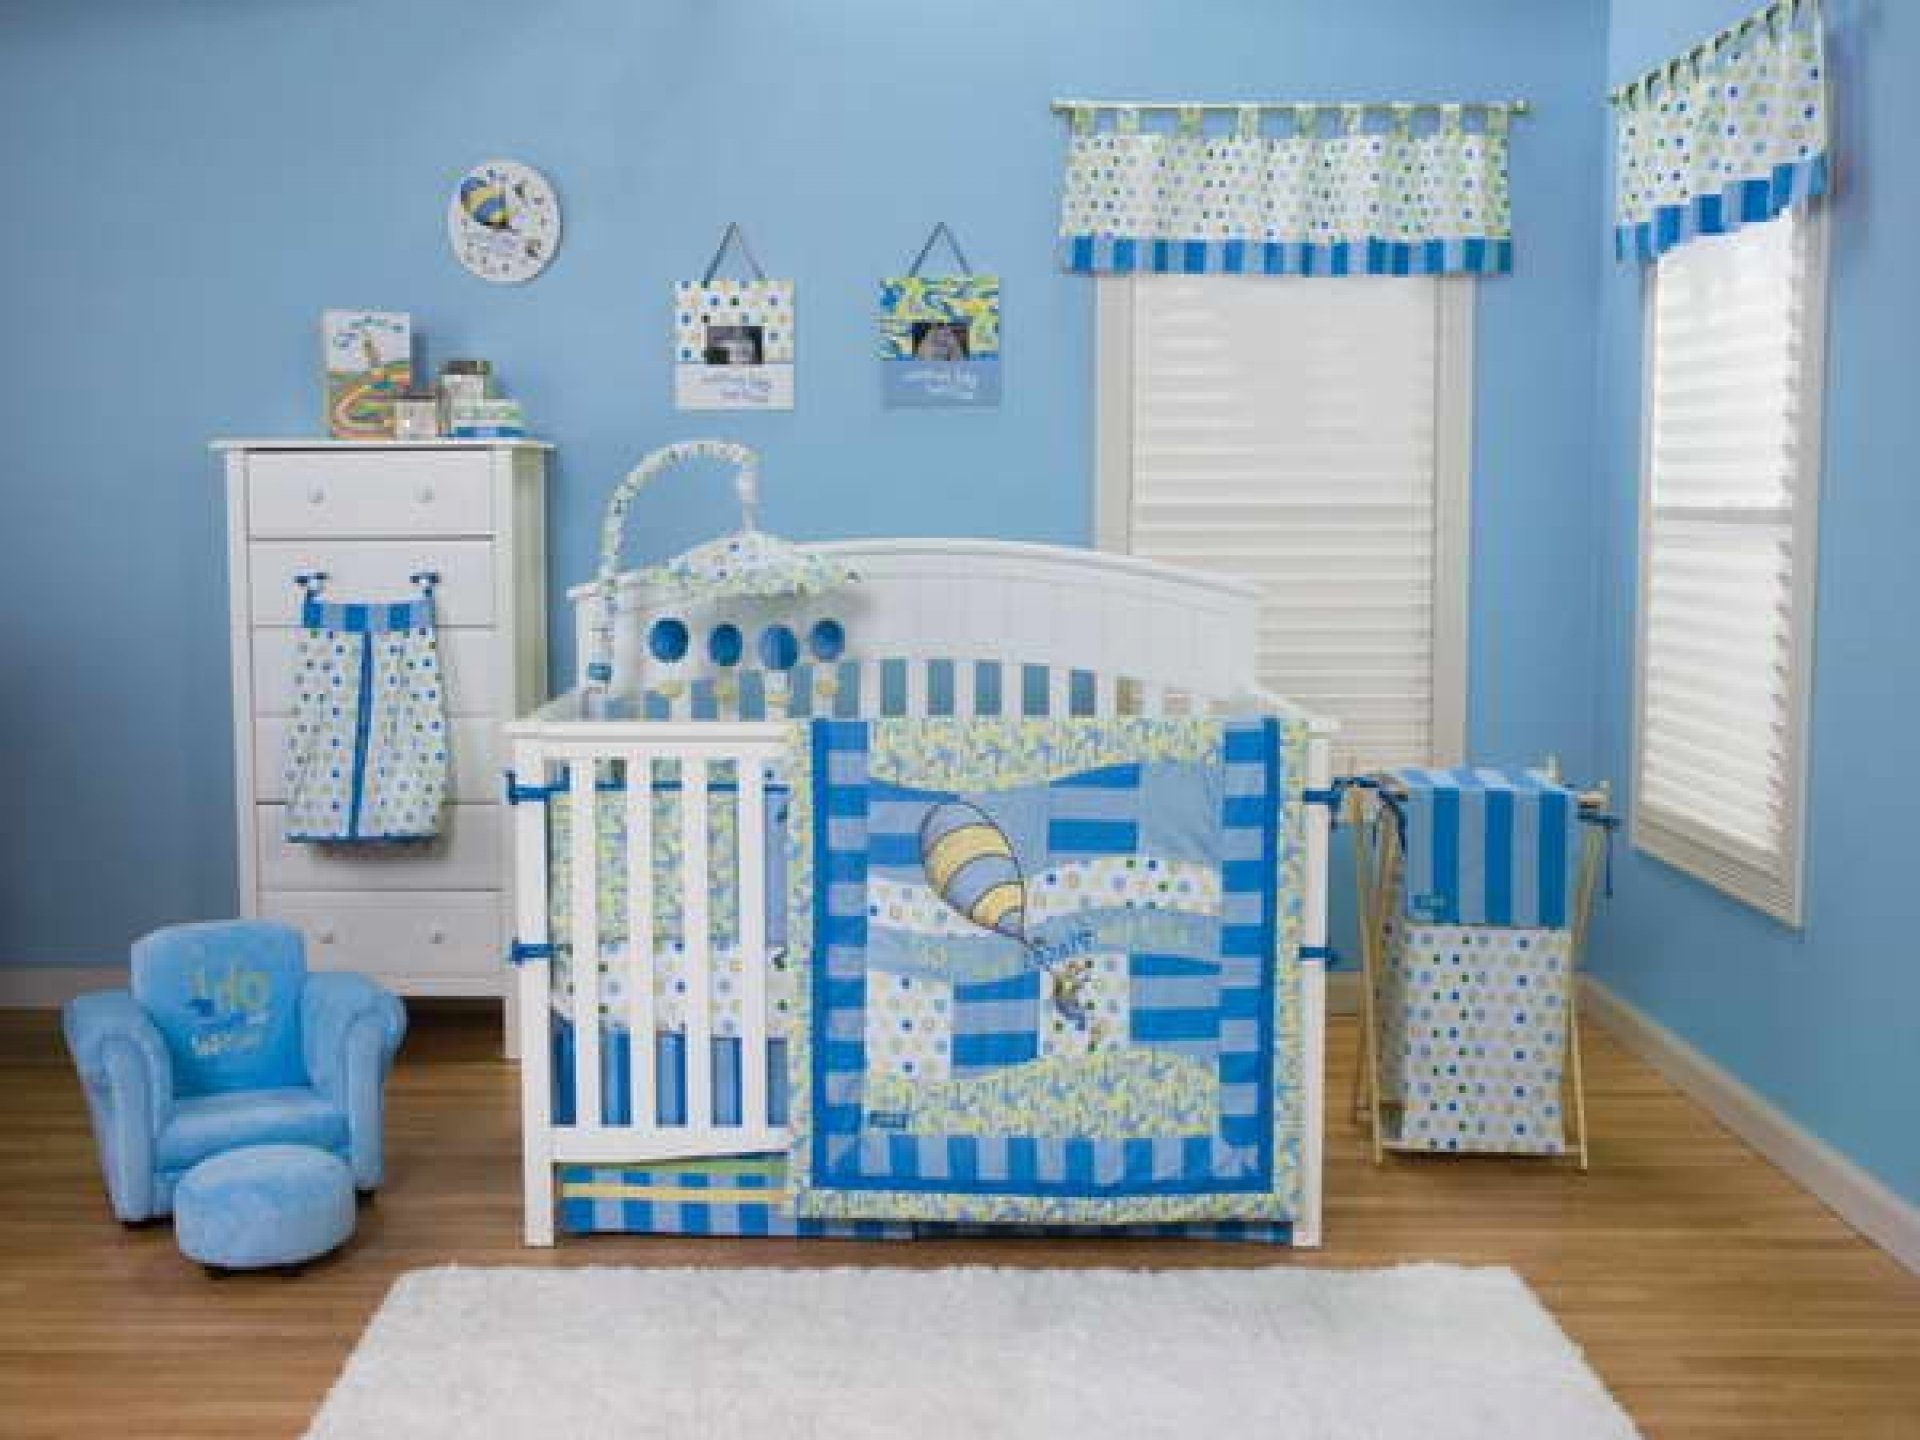 10 Great Baby Room Ideas For A Boy decorating baby room ideas boy kids roomkids inspirations nursery 2020